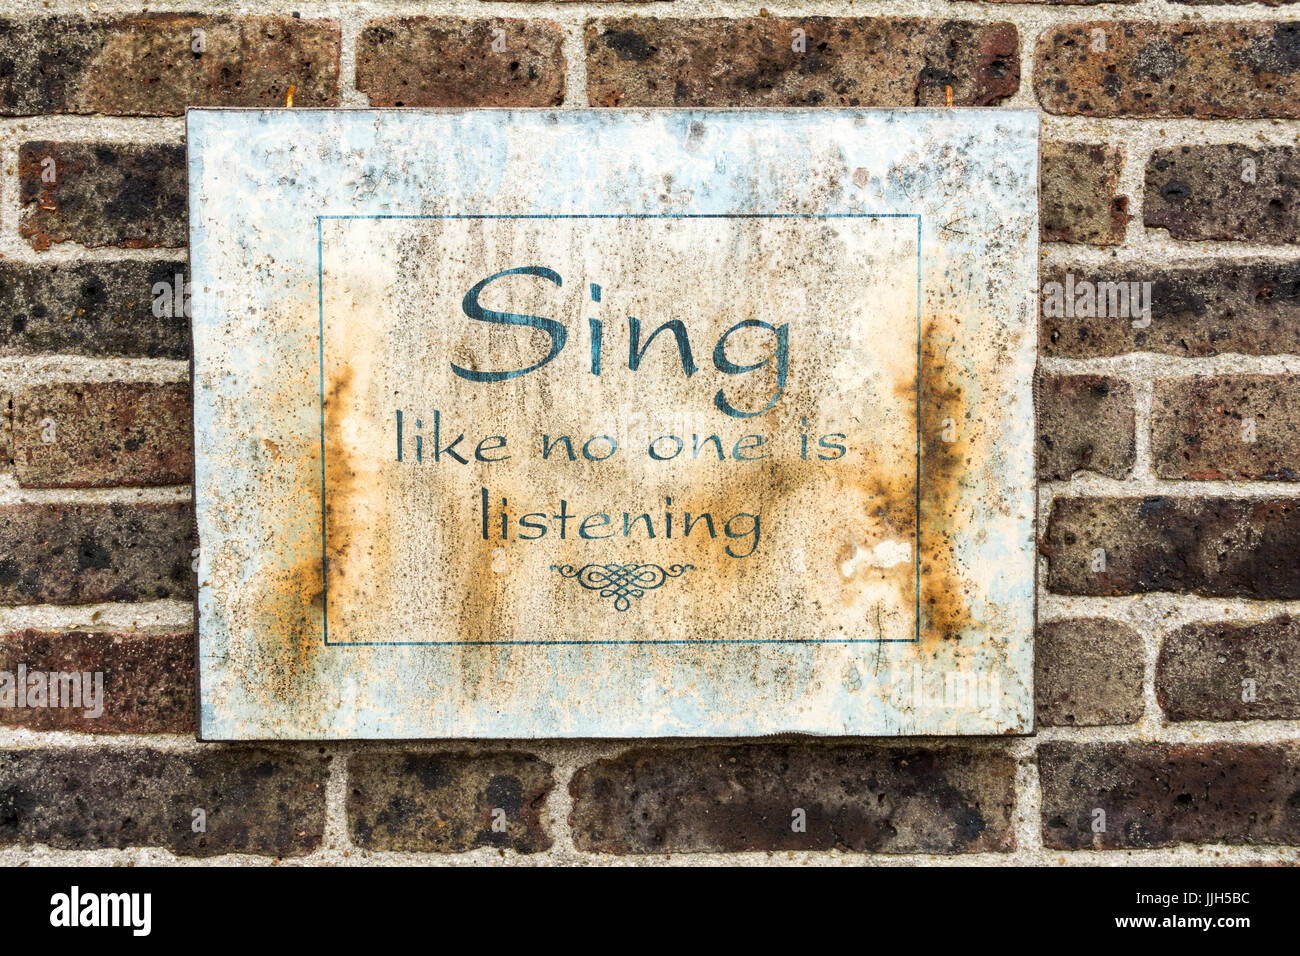 Sing like no one is listening plaque - Stock Image